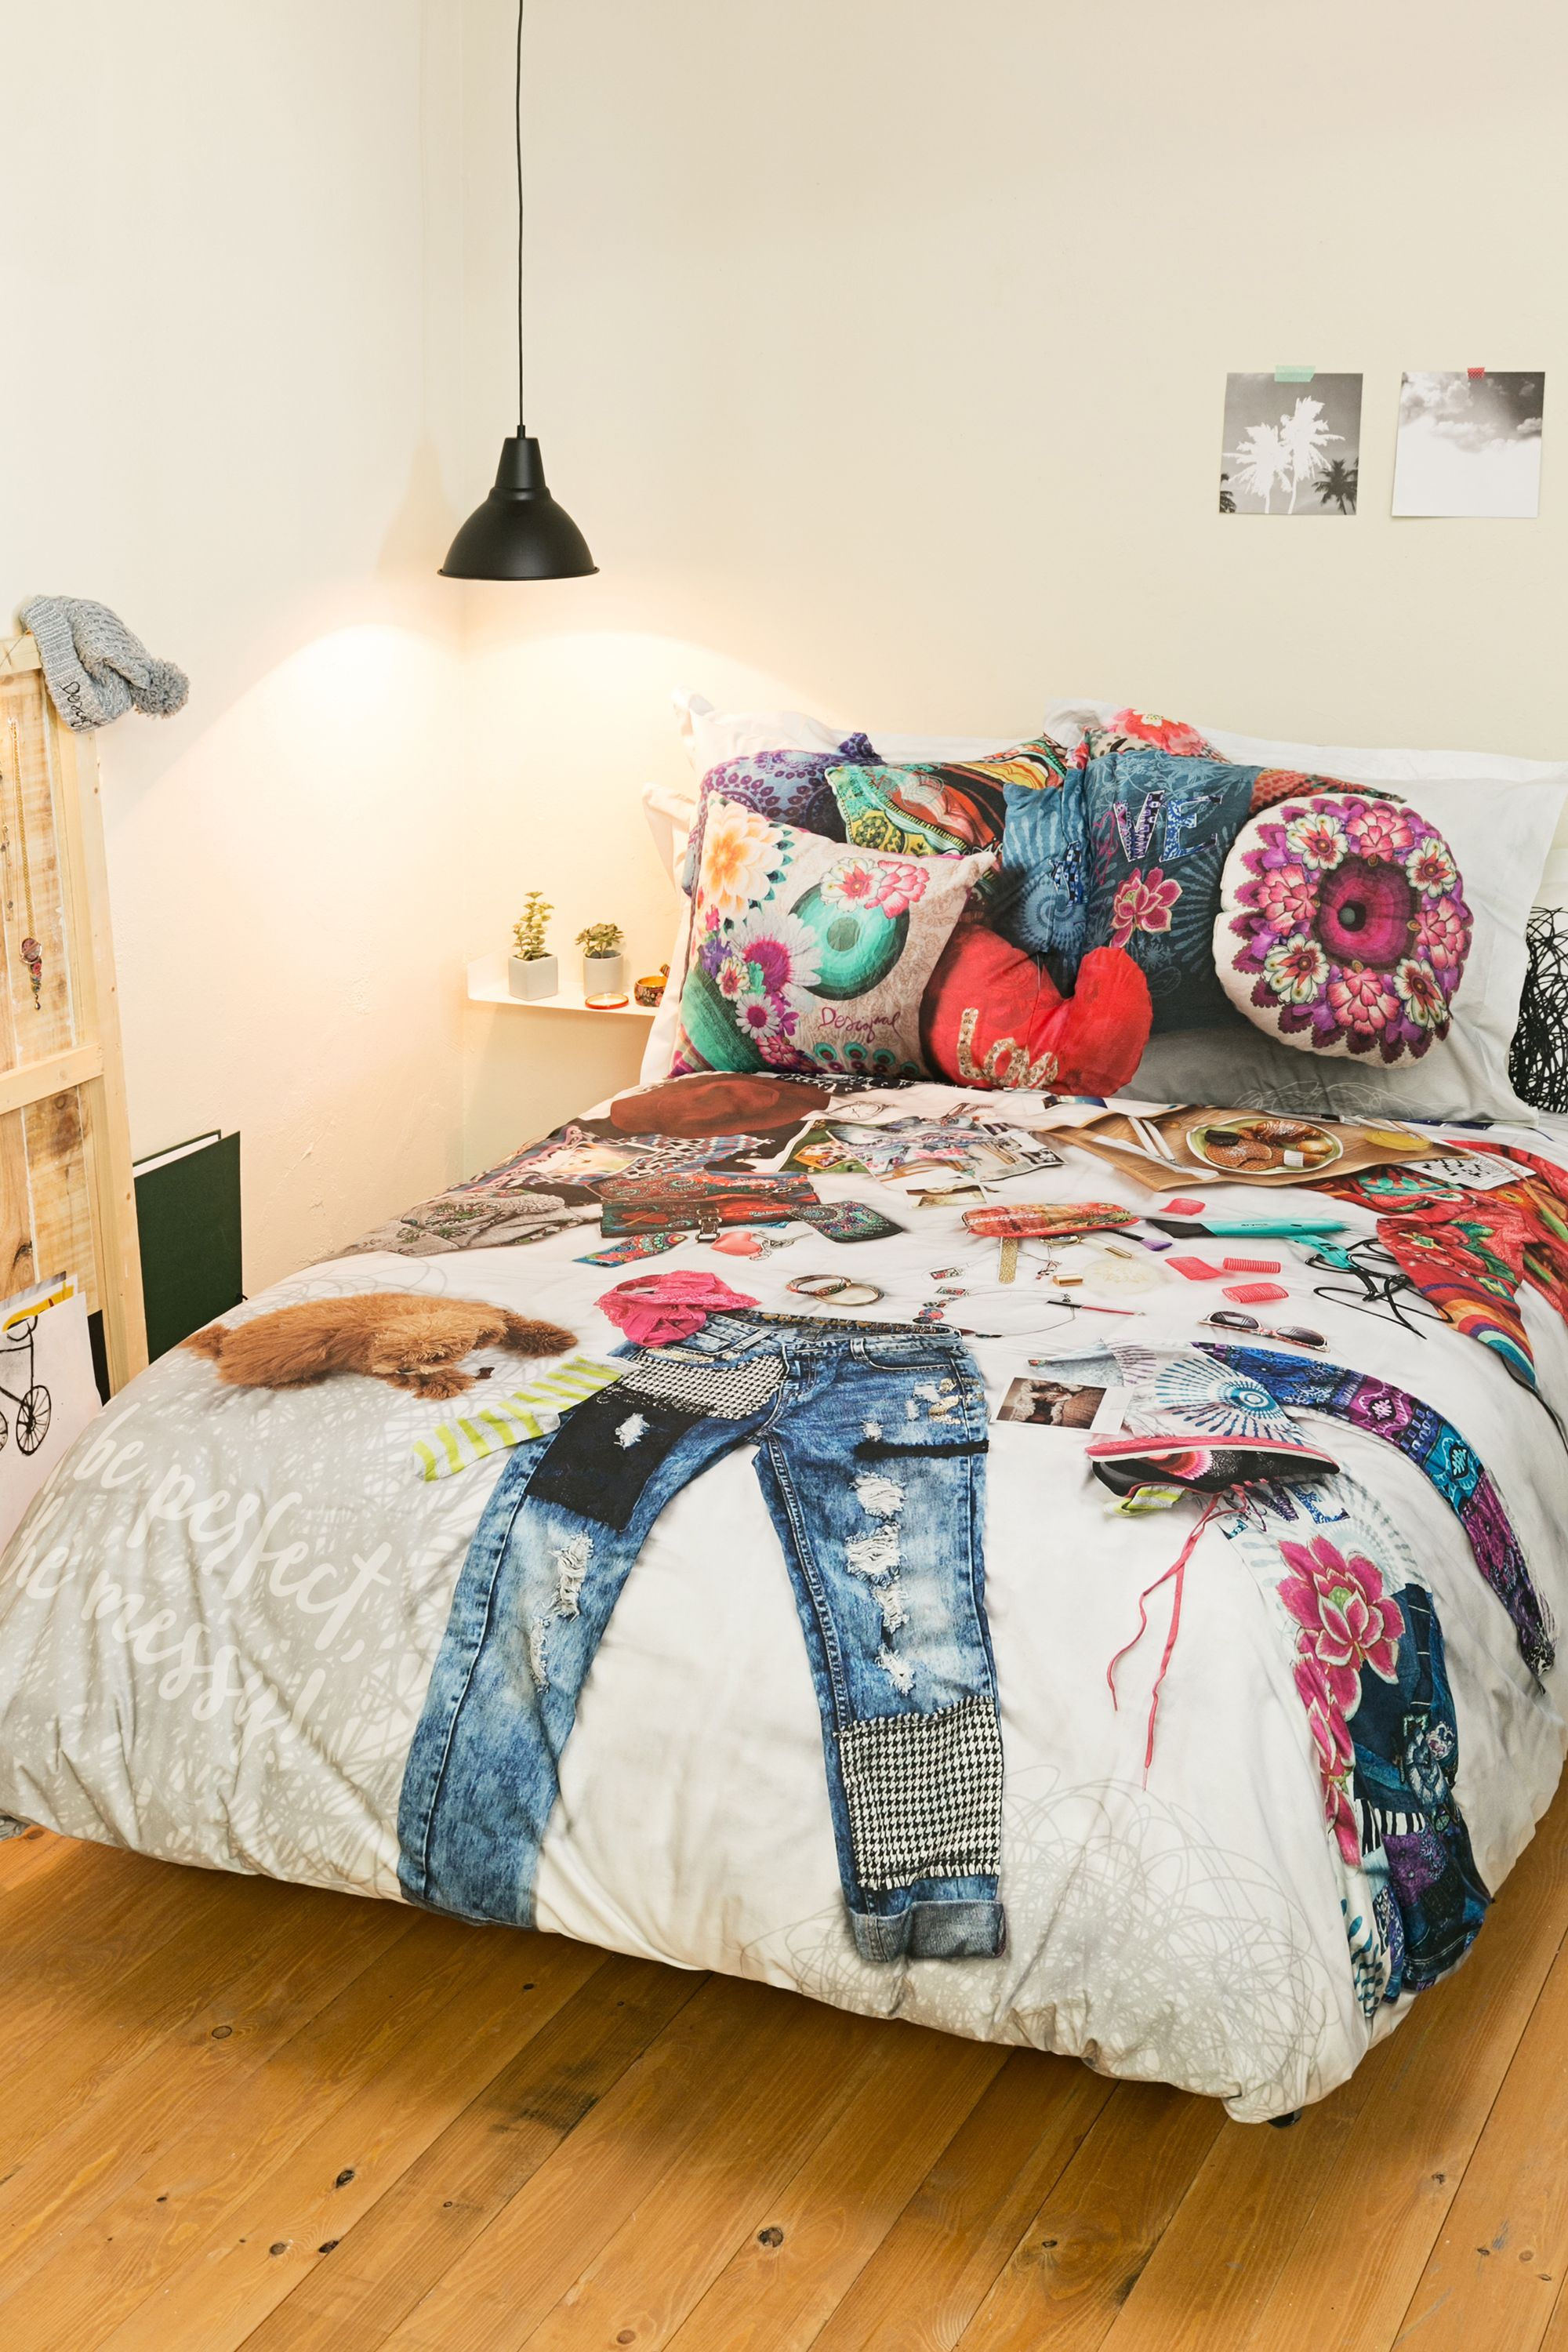 Guilty of leaving your clothes all over your bedsheets? We hear ya